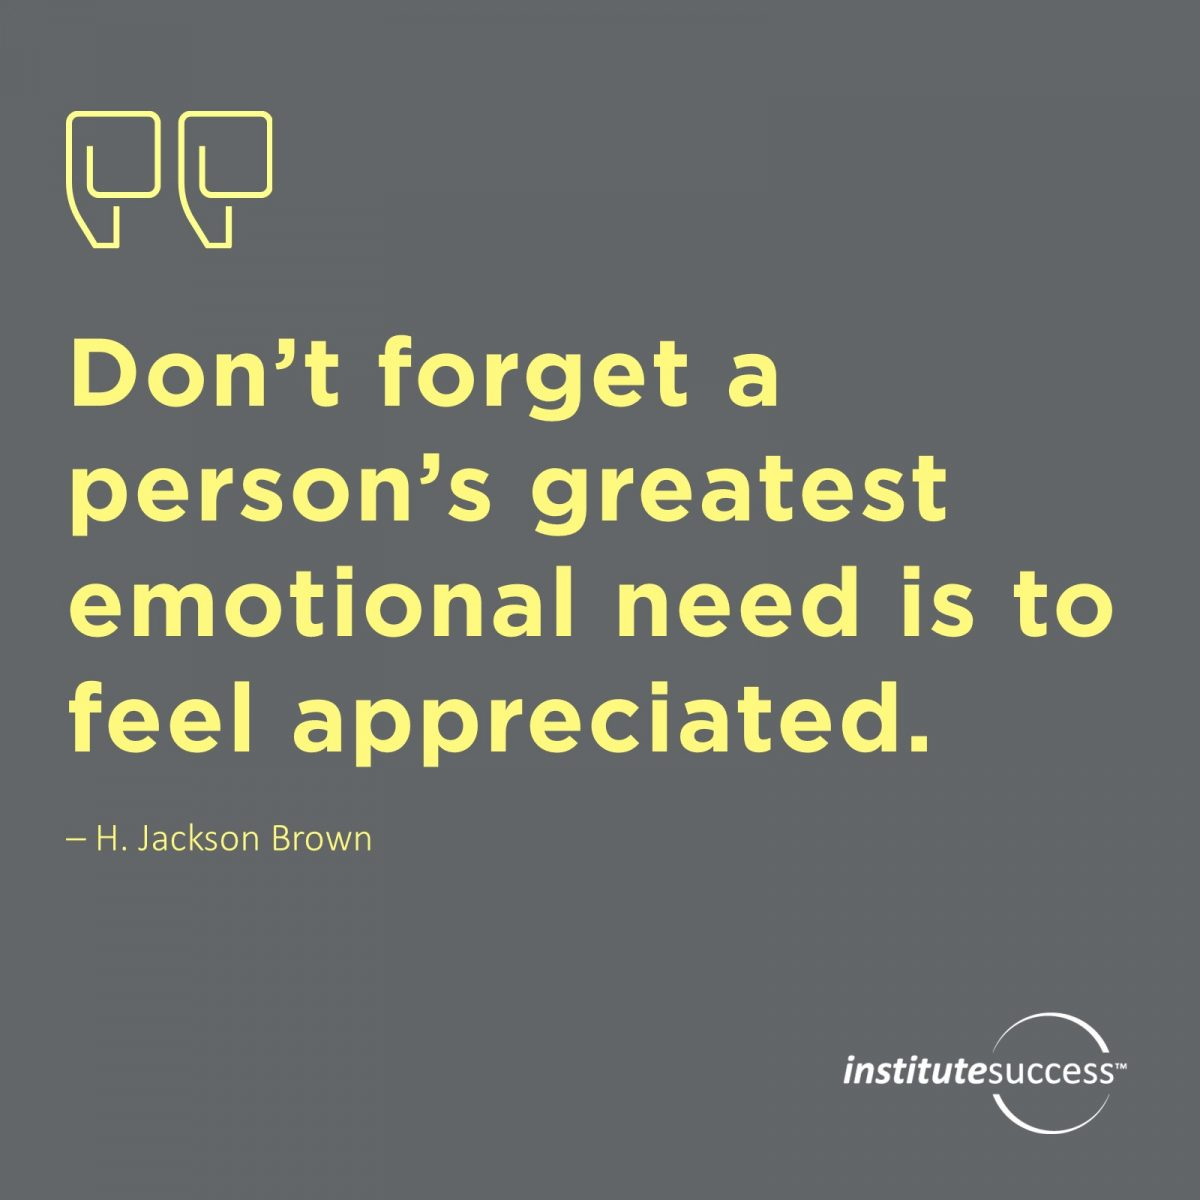 Don't forget a person's greatest emotional need is to feel appreciated.H. Jackson Brown